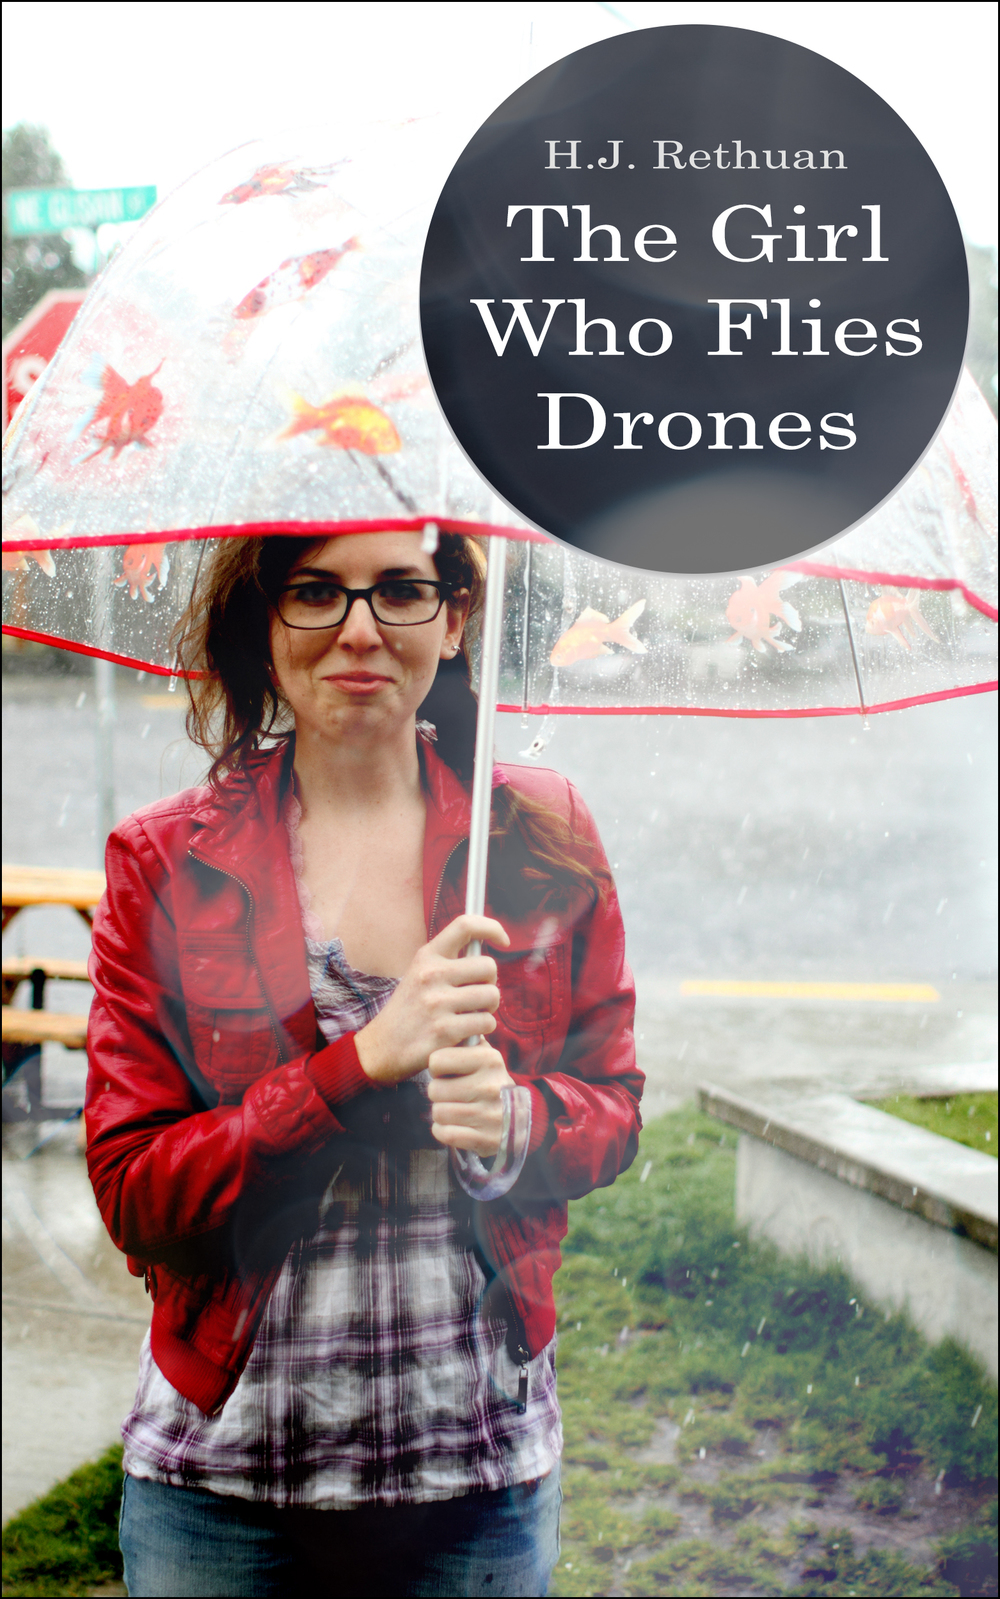 The Girl Who Flies Drones